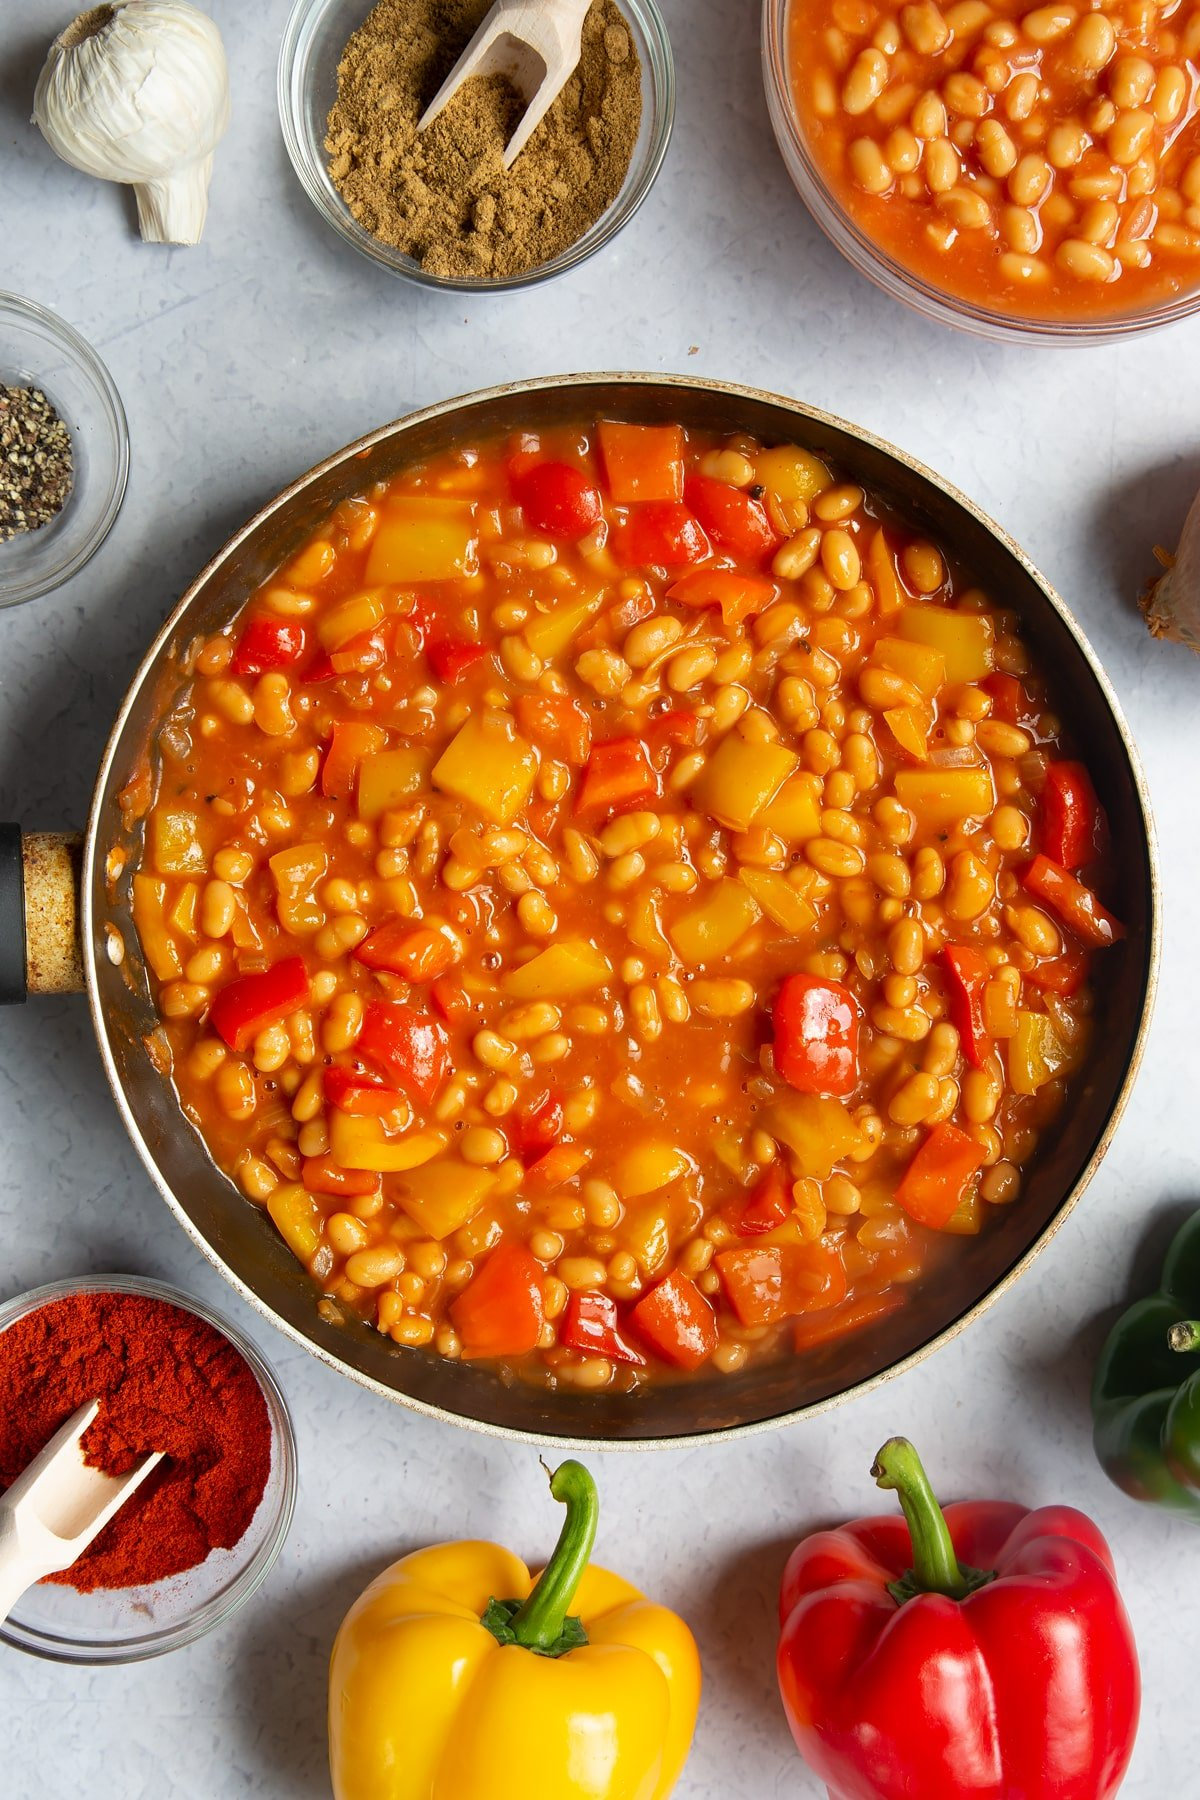 A frying pan containing fried onion, garlic, paprika, cumin, pepper and red and yellow peppers and baked beans. Ingredients to make baked bean chilli surround the pan.